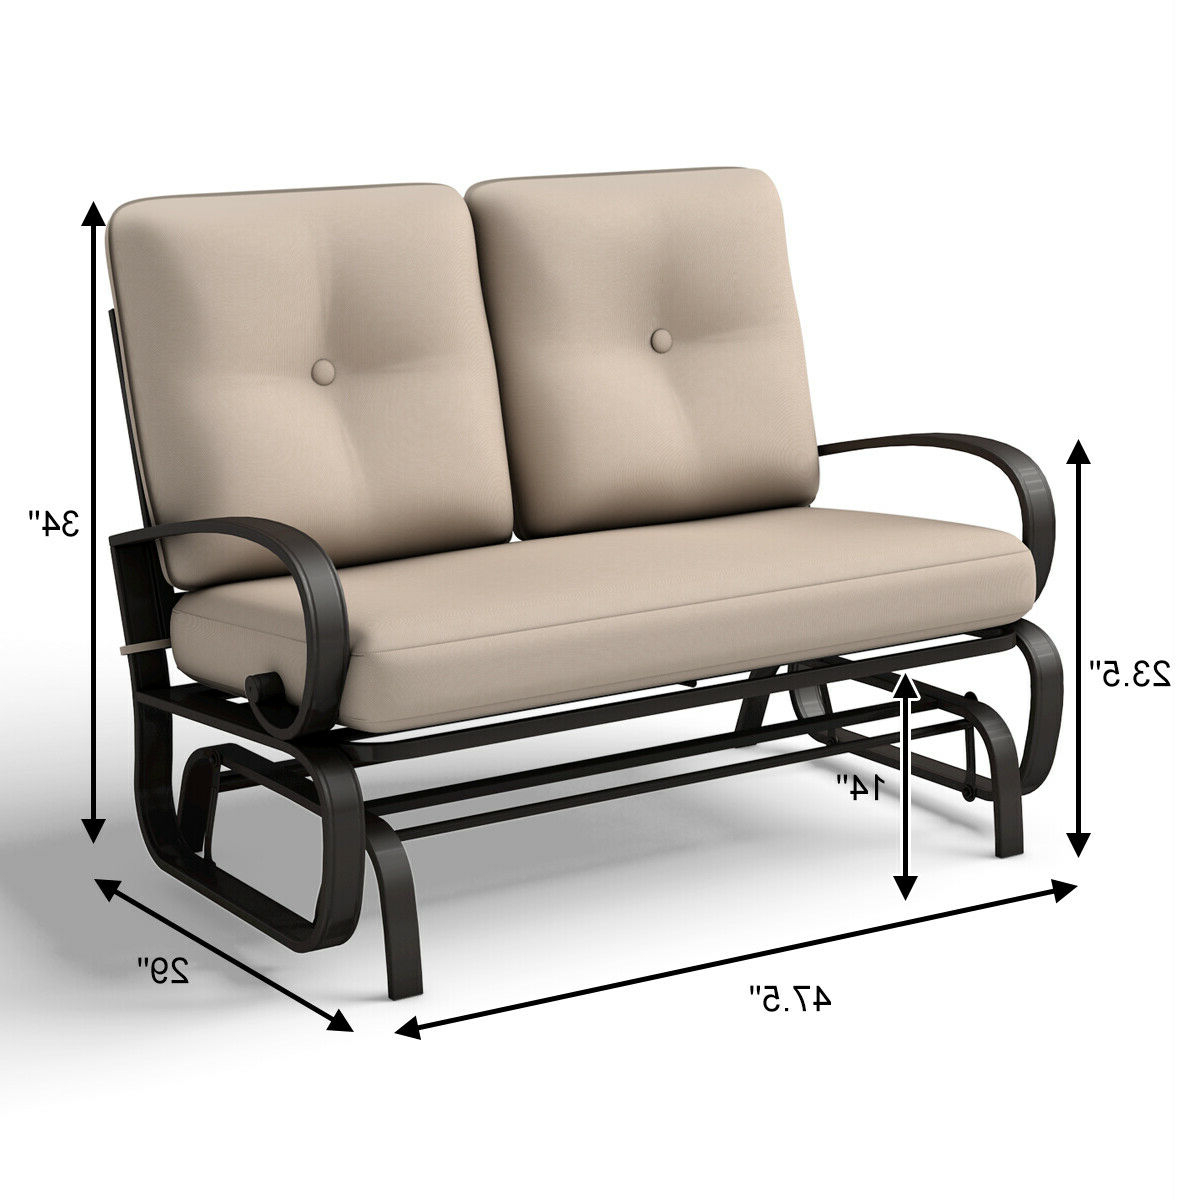 Cushioned Glider Benches With Cushions In Current Costway Glider Outdoor Patio Rocking Bench Loveseat (Gallery 6 of 30)